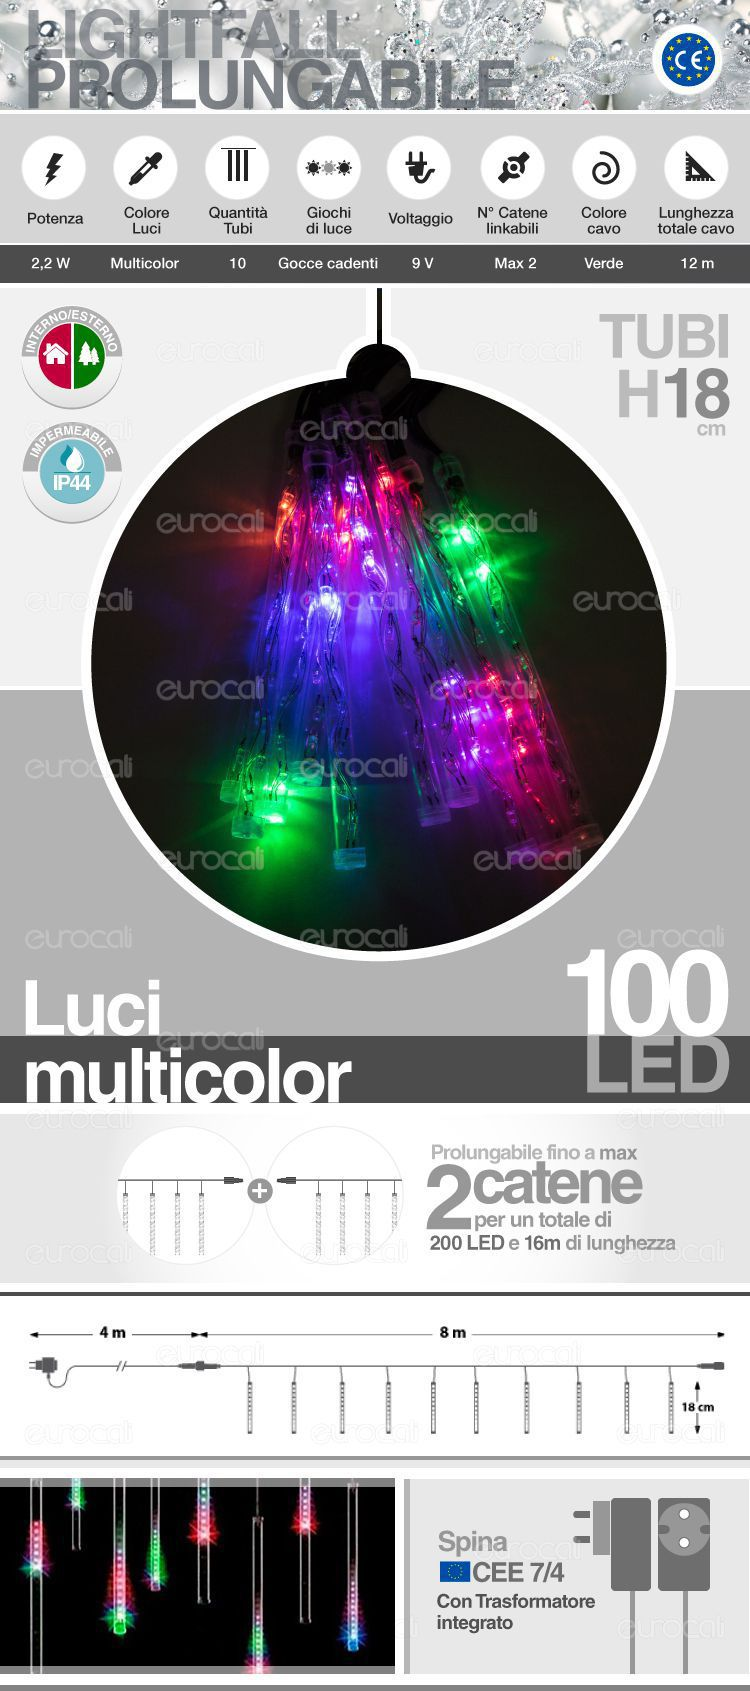 tubi LED multicolor